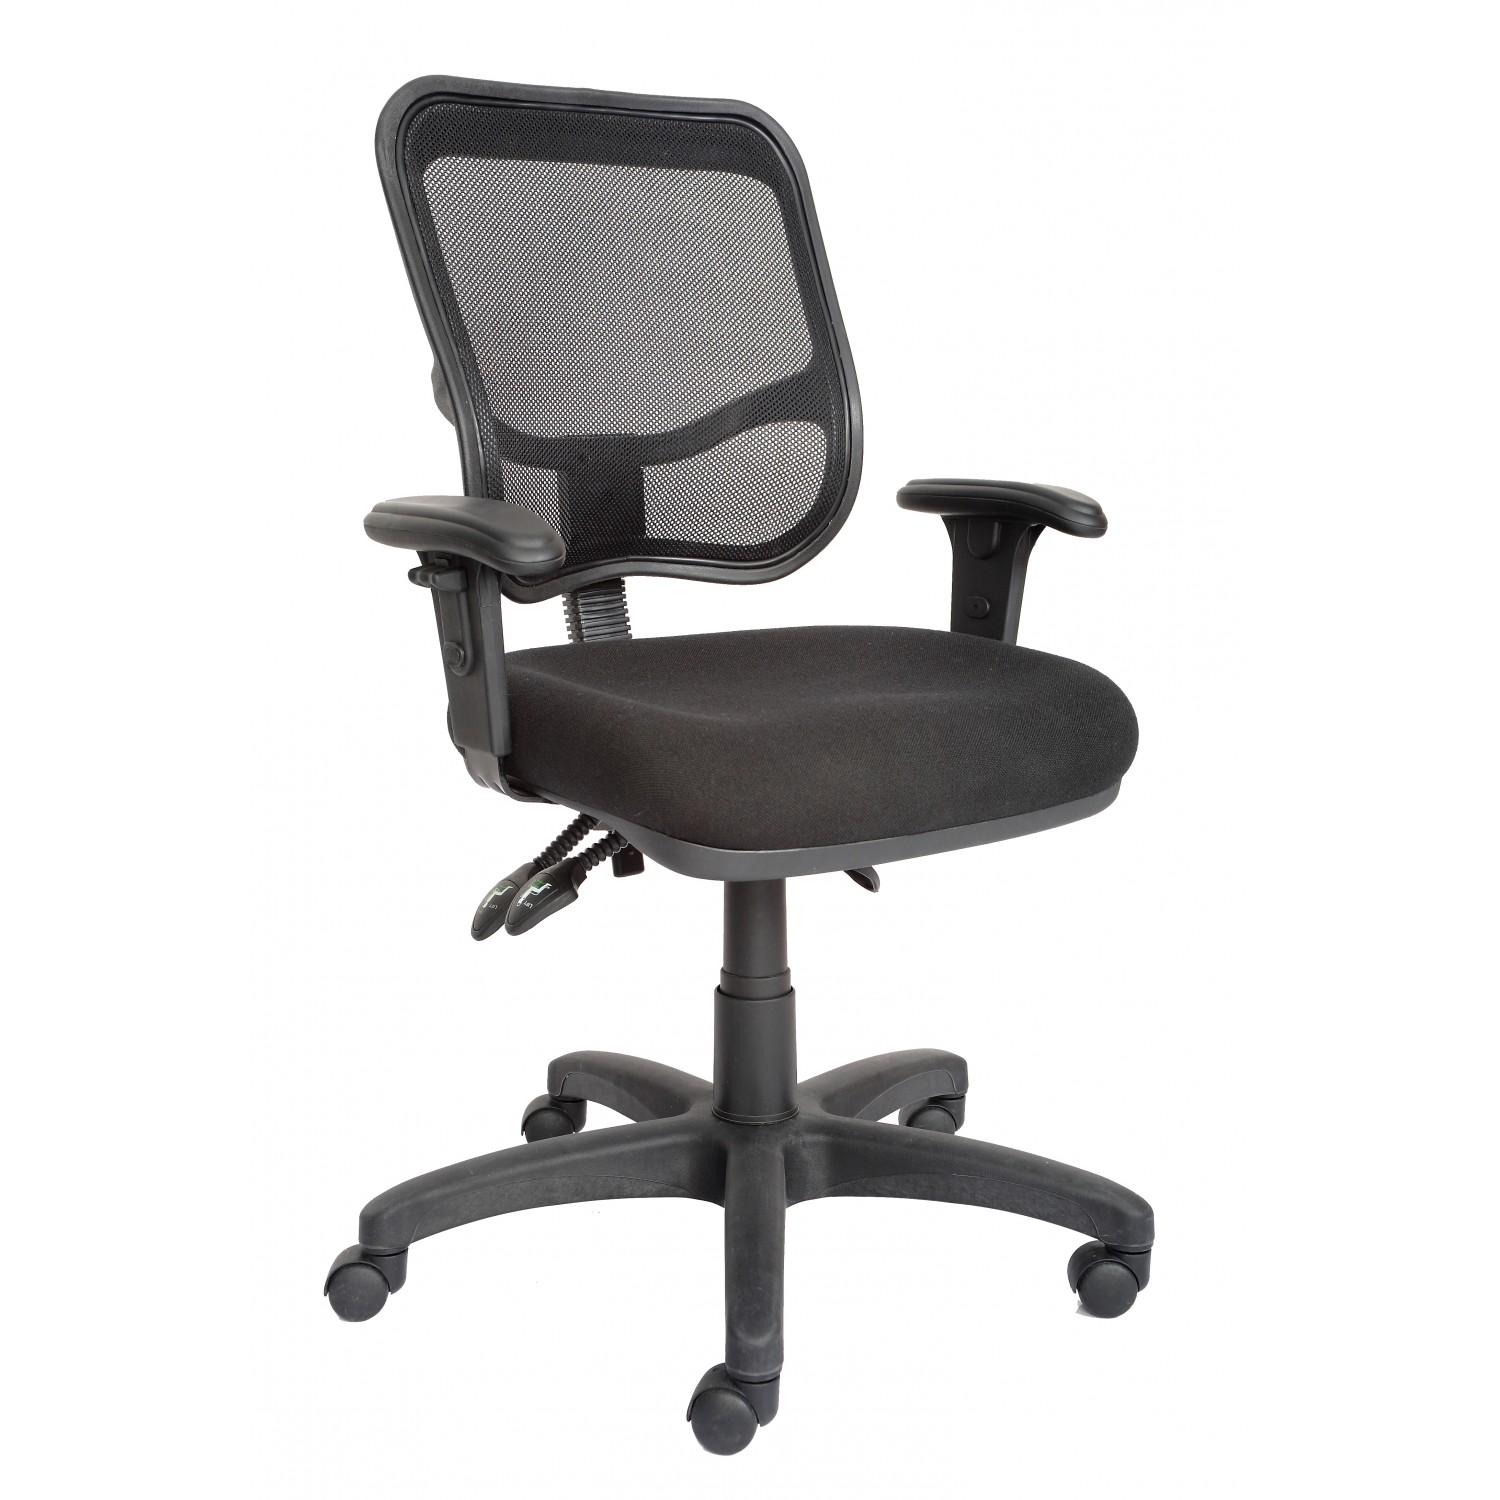 Ergonomic Mesh Office Chair Ergonomic Mesh Chair Em300c- Office Furniture Since 1990